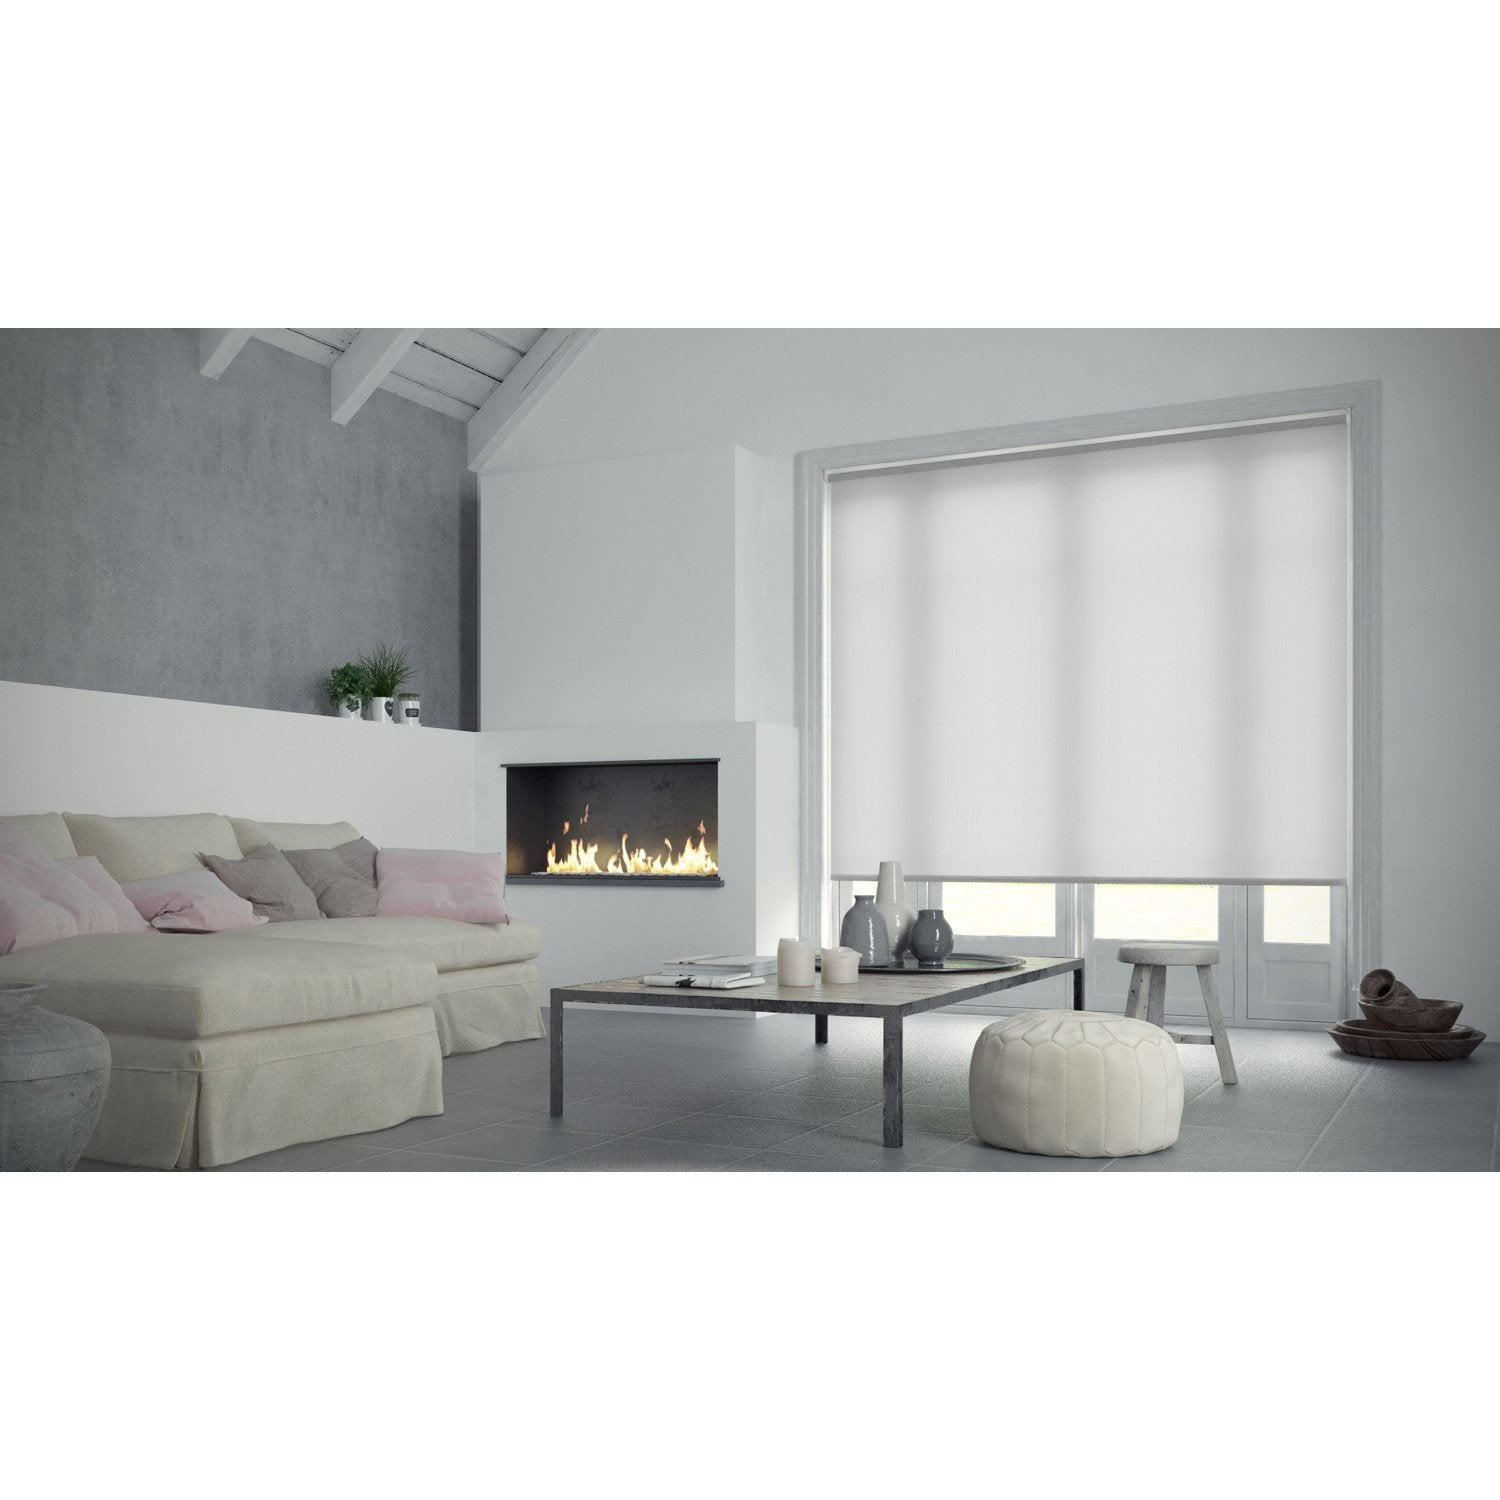 store enrouleur tamisant inspire blanc blanc n 0 150x250 cm leroy merlin. Black Bedroom Furniture Sets. Home Design Ideas